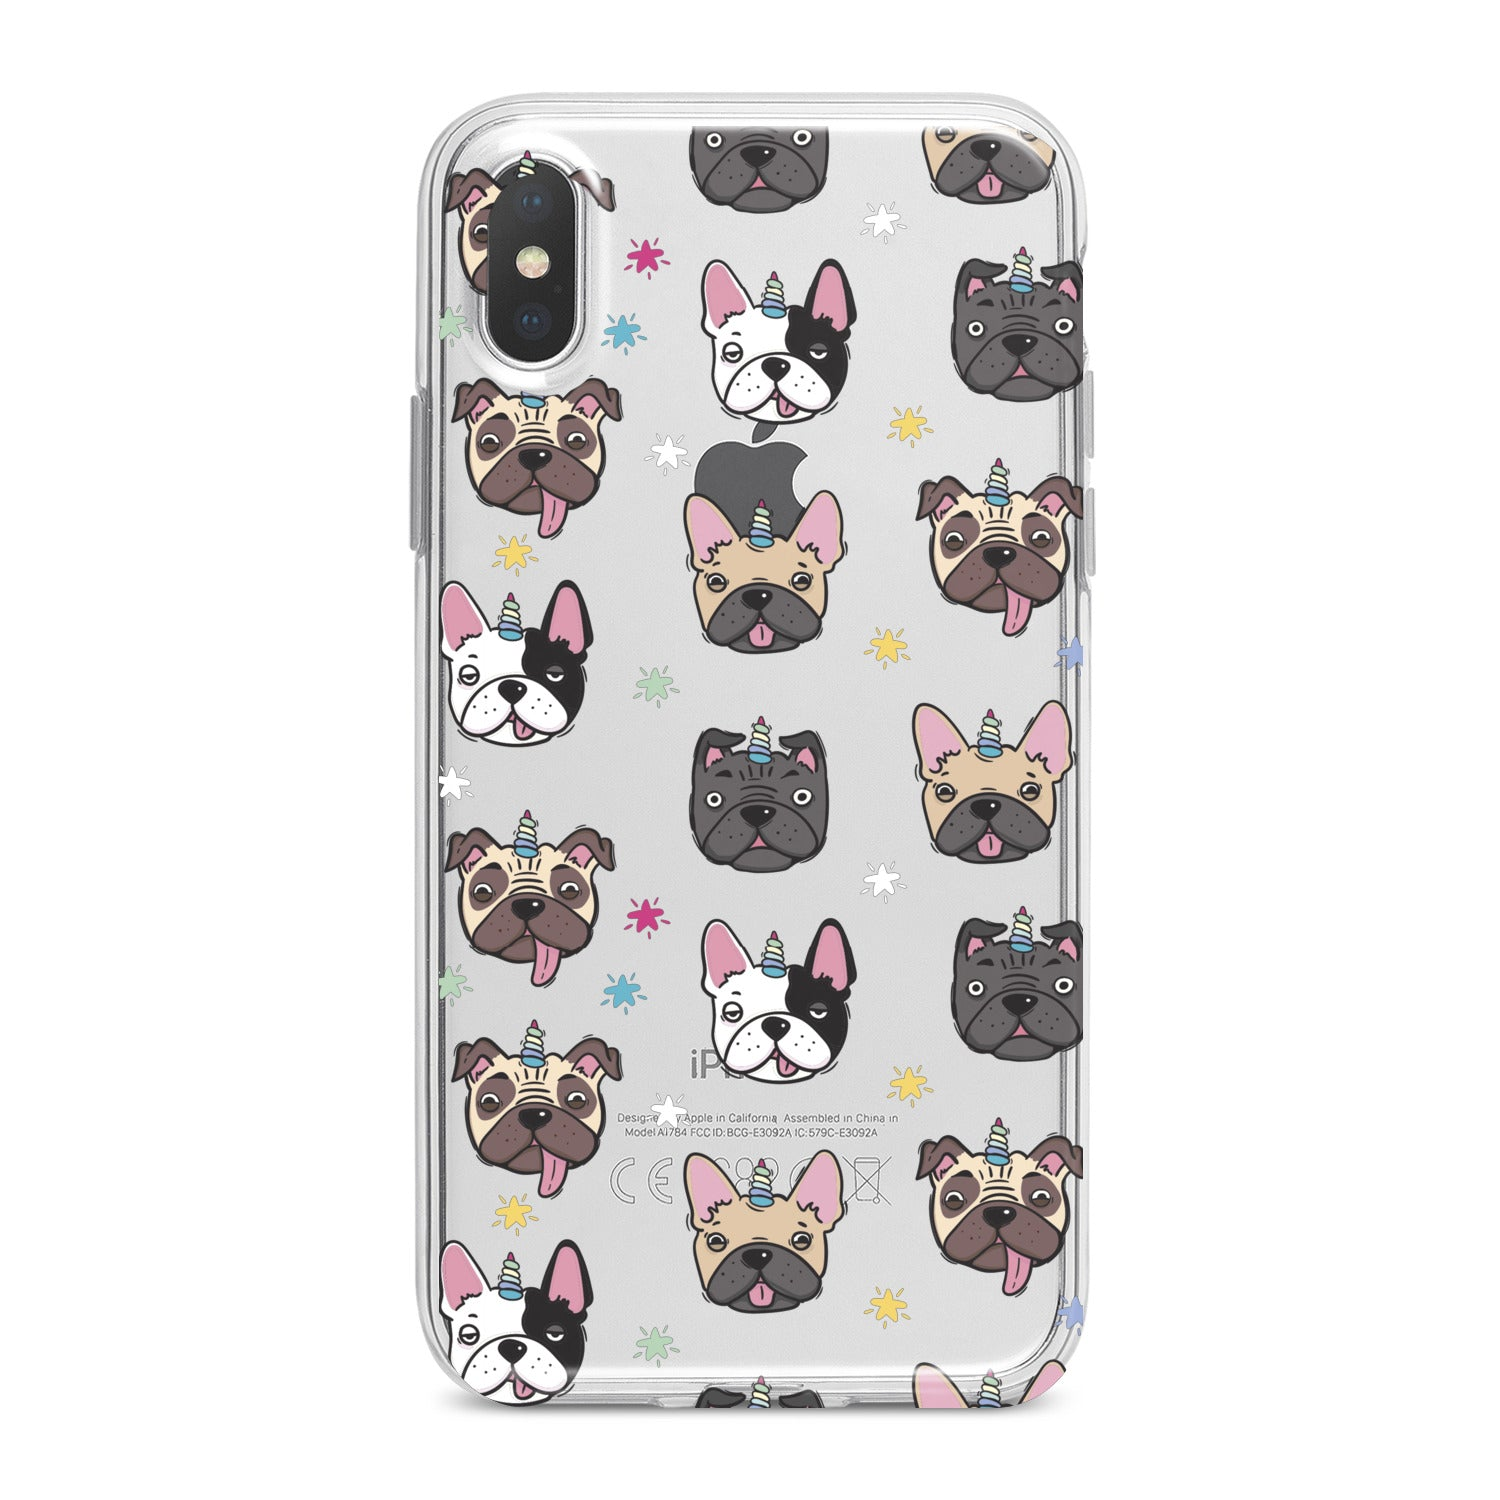 Lex Altern Cute Dog Pttern Phone Case for your iPhone & Android phone.